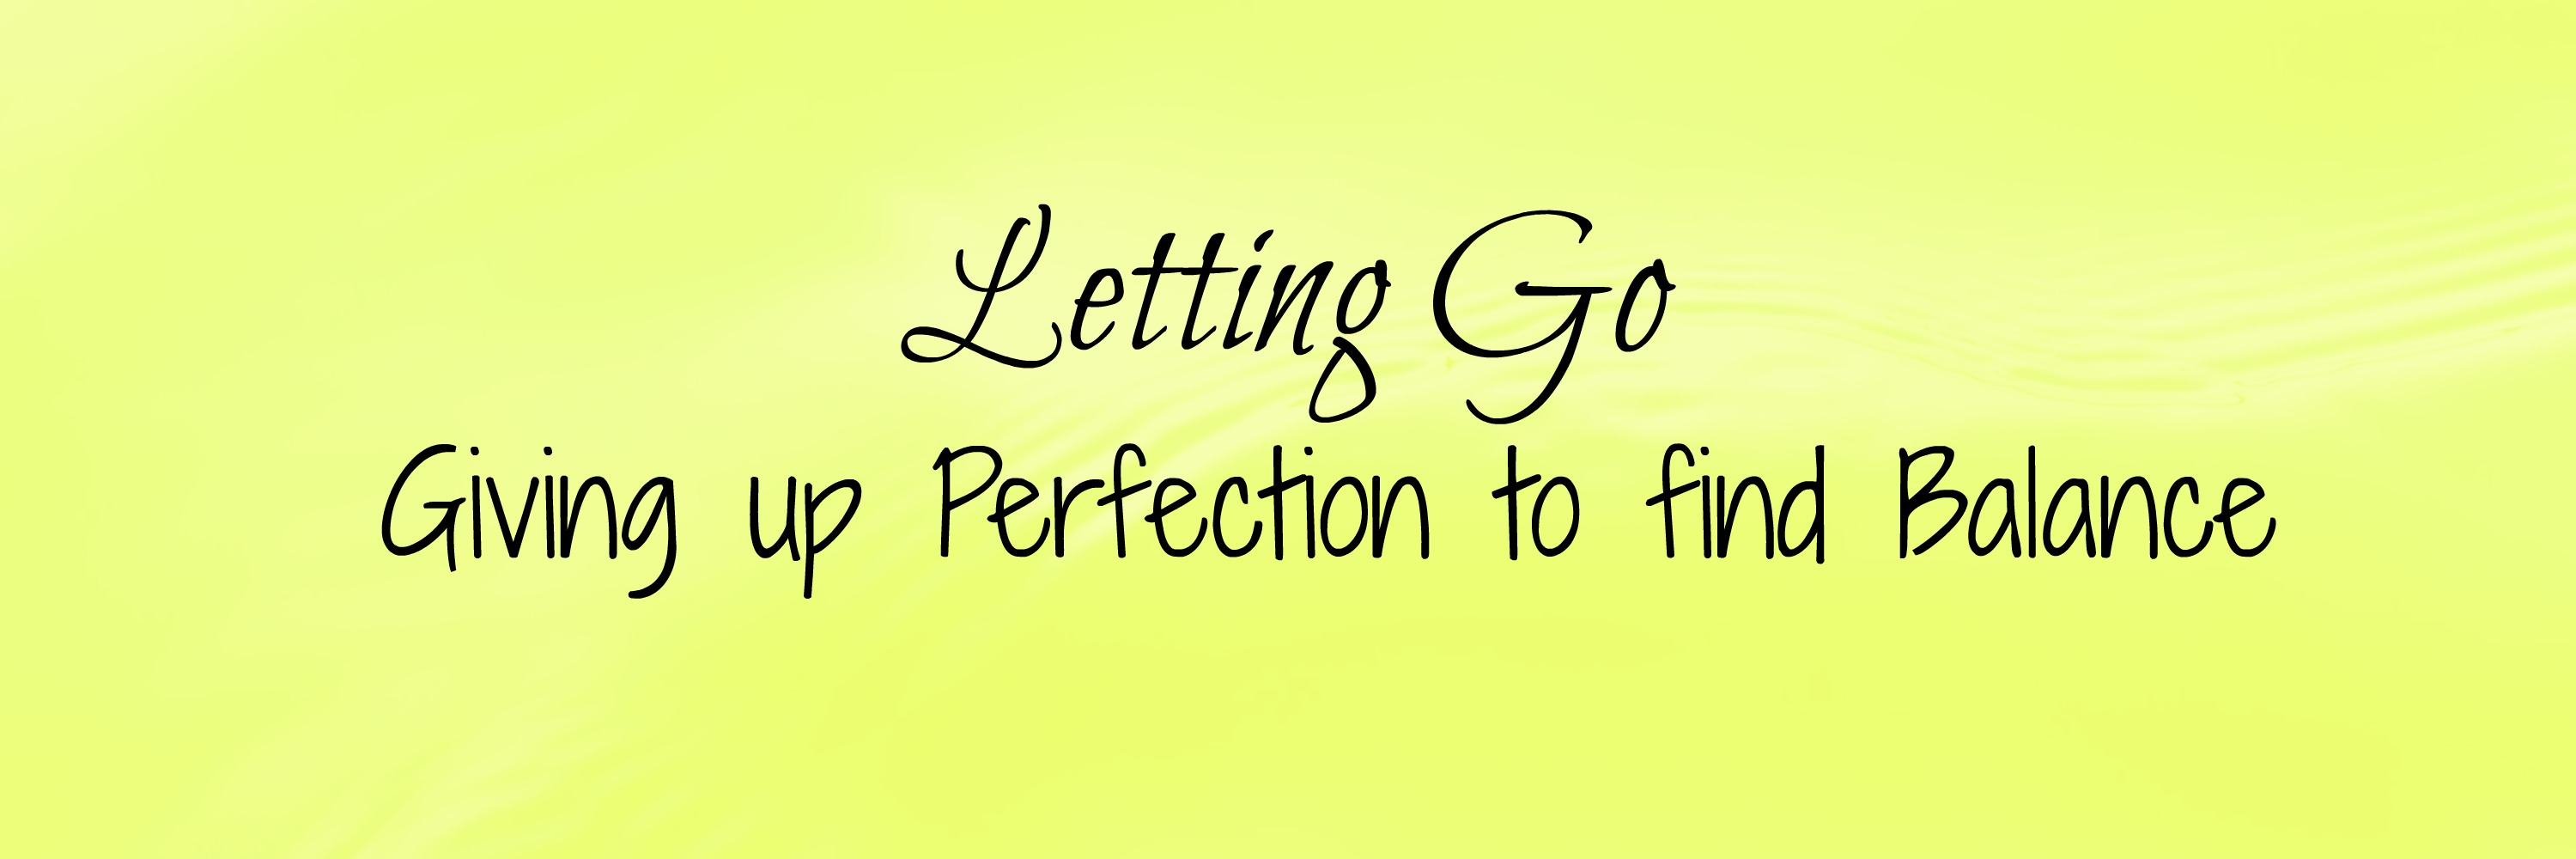 Letting Go Giving Up Perfection To Find Balance